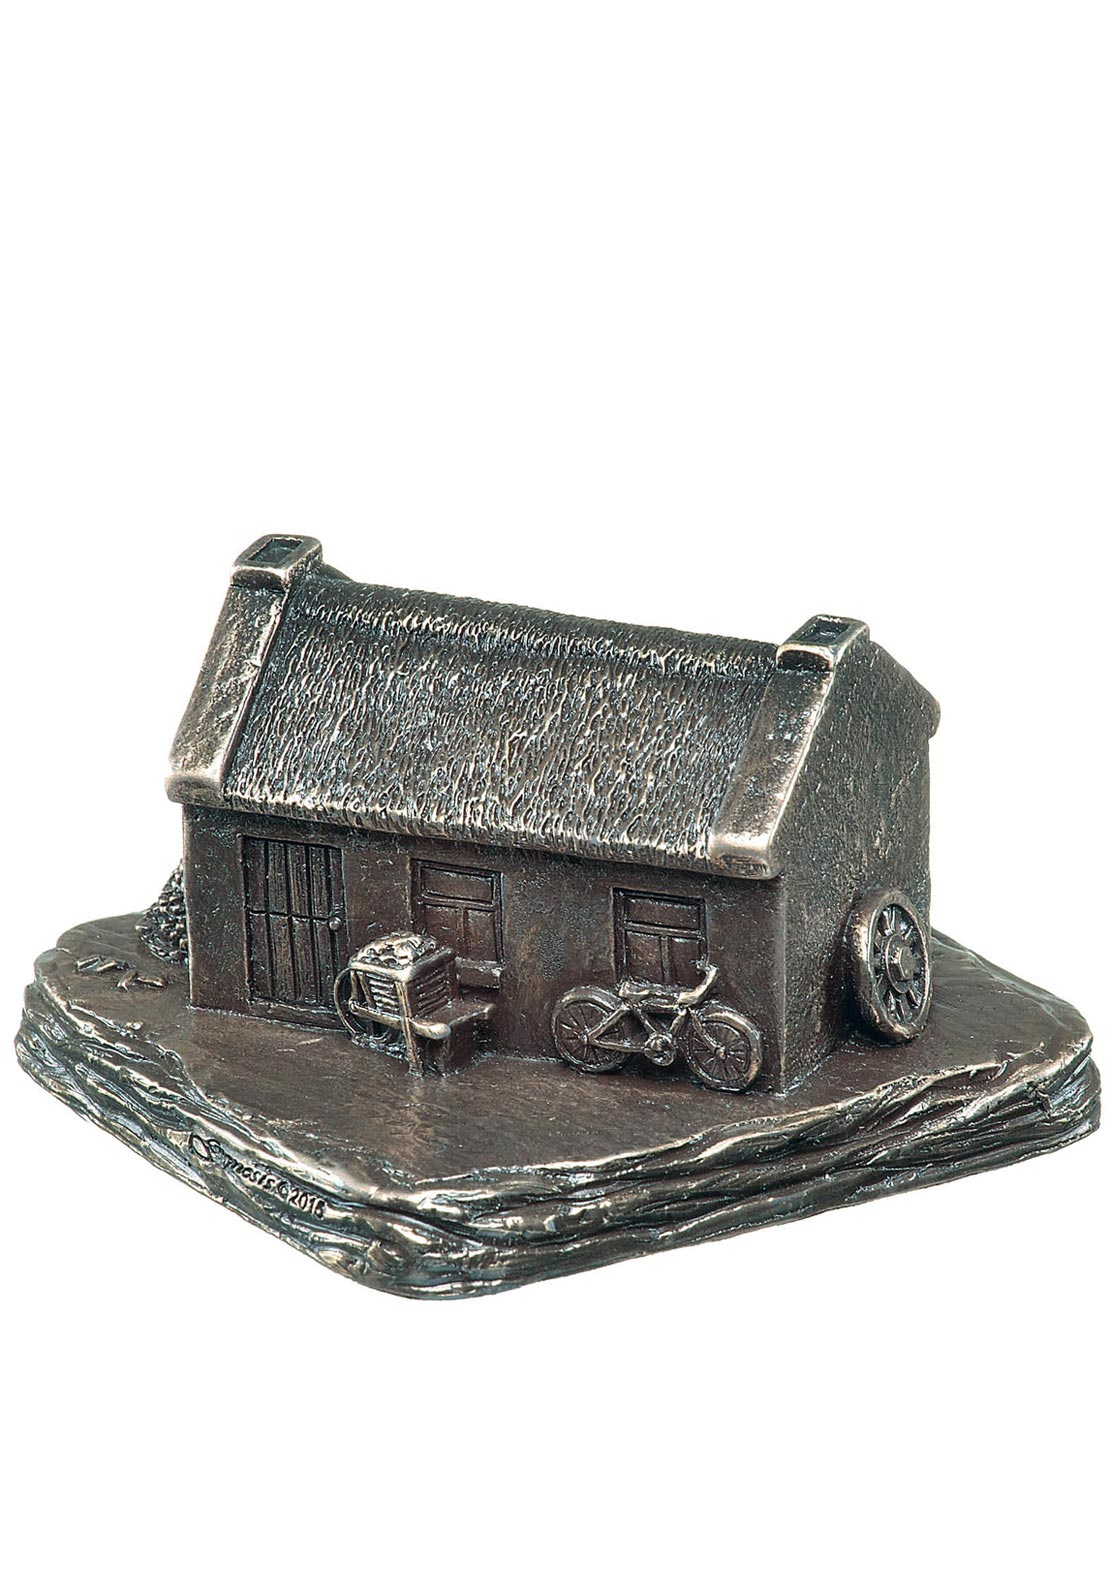 Genesis Irish Cottage Bronze Ornament